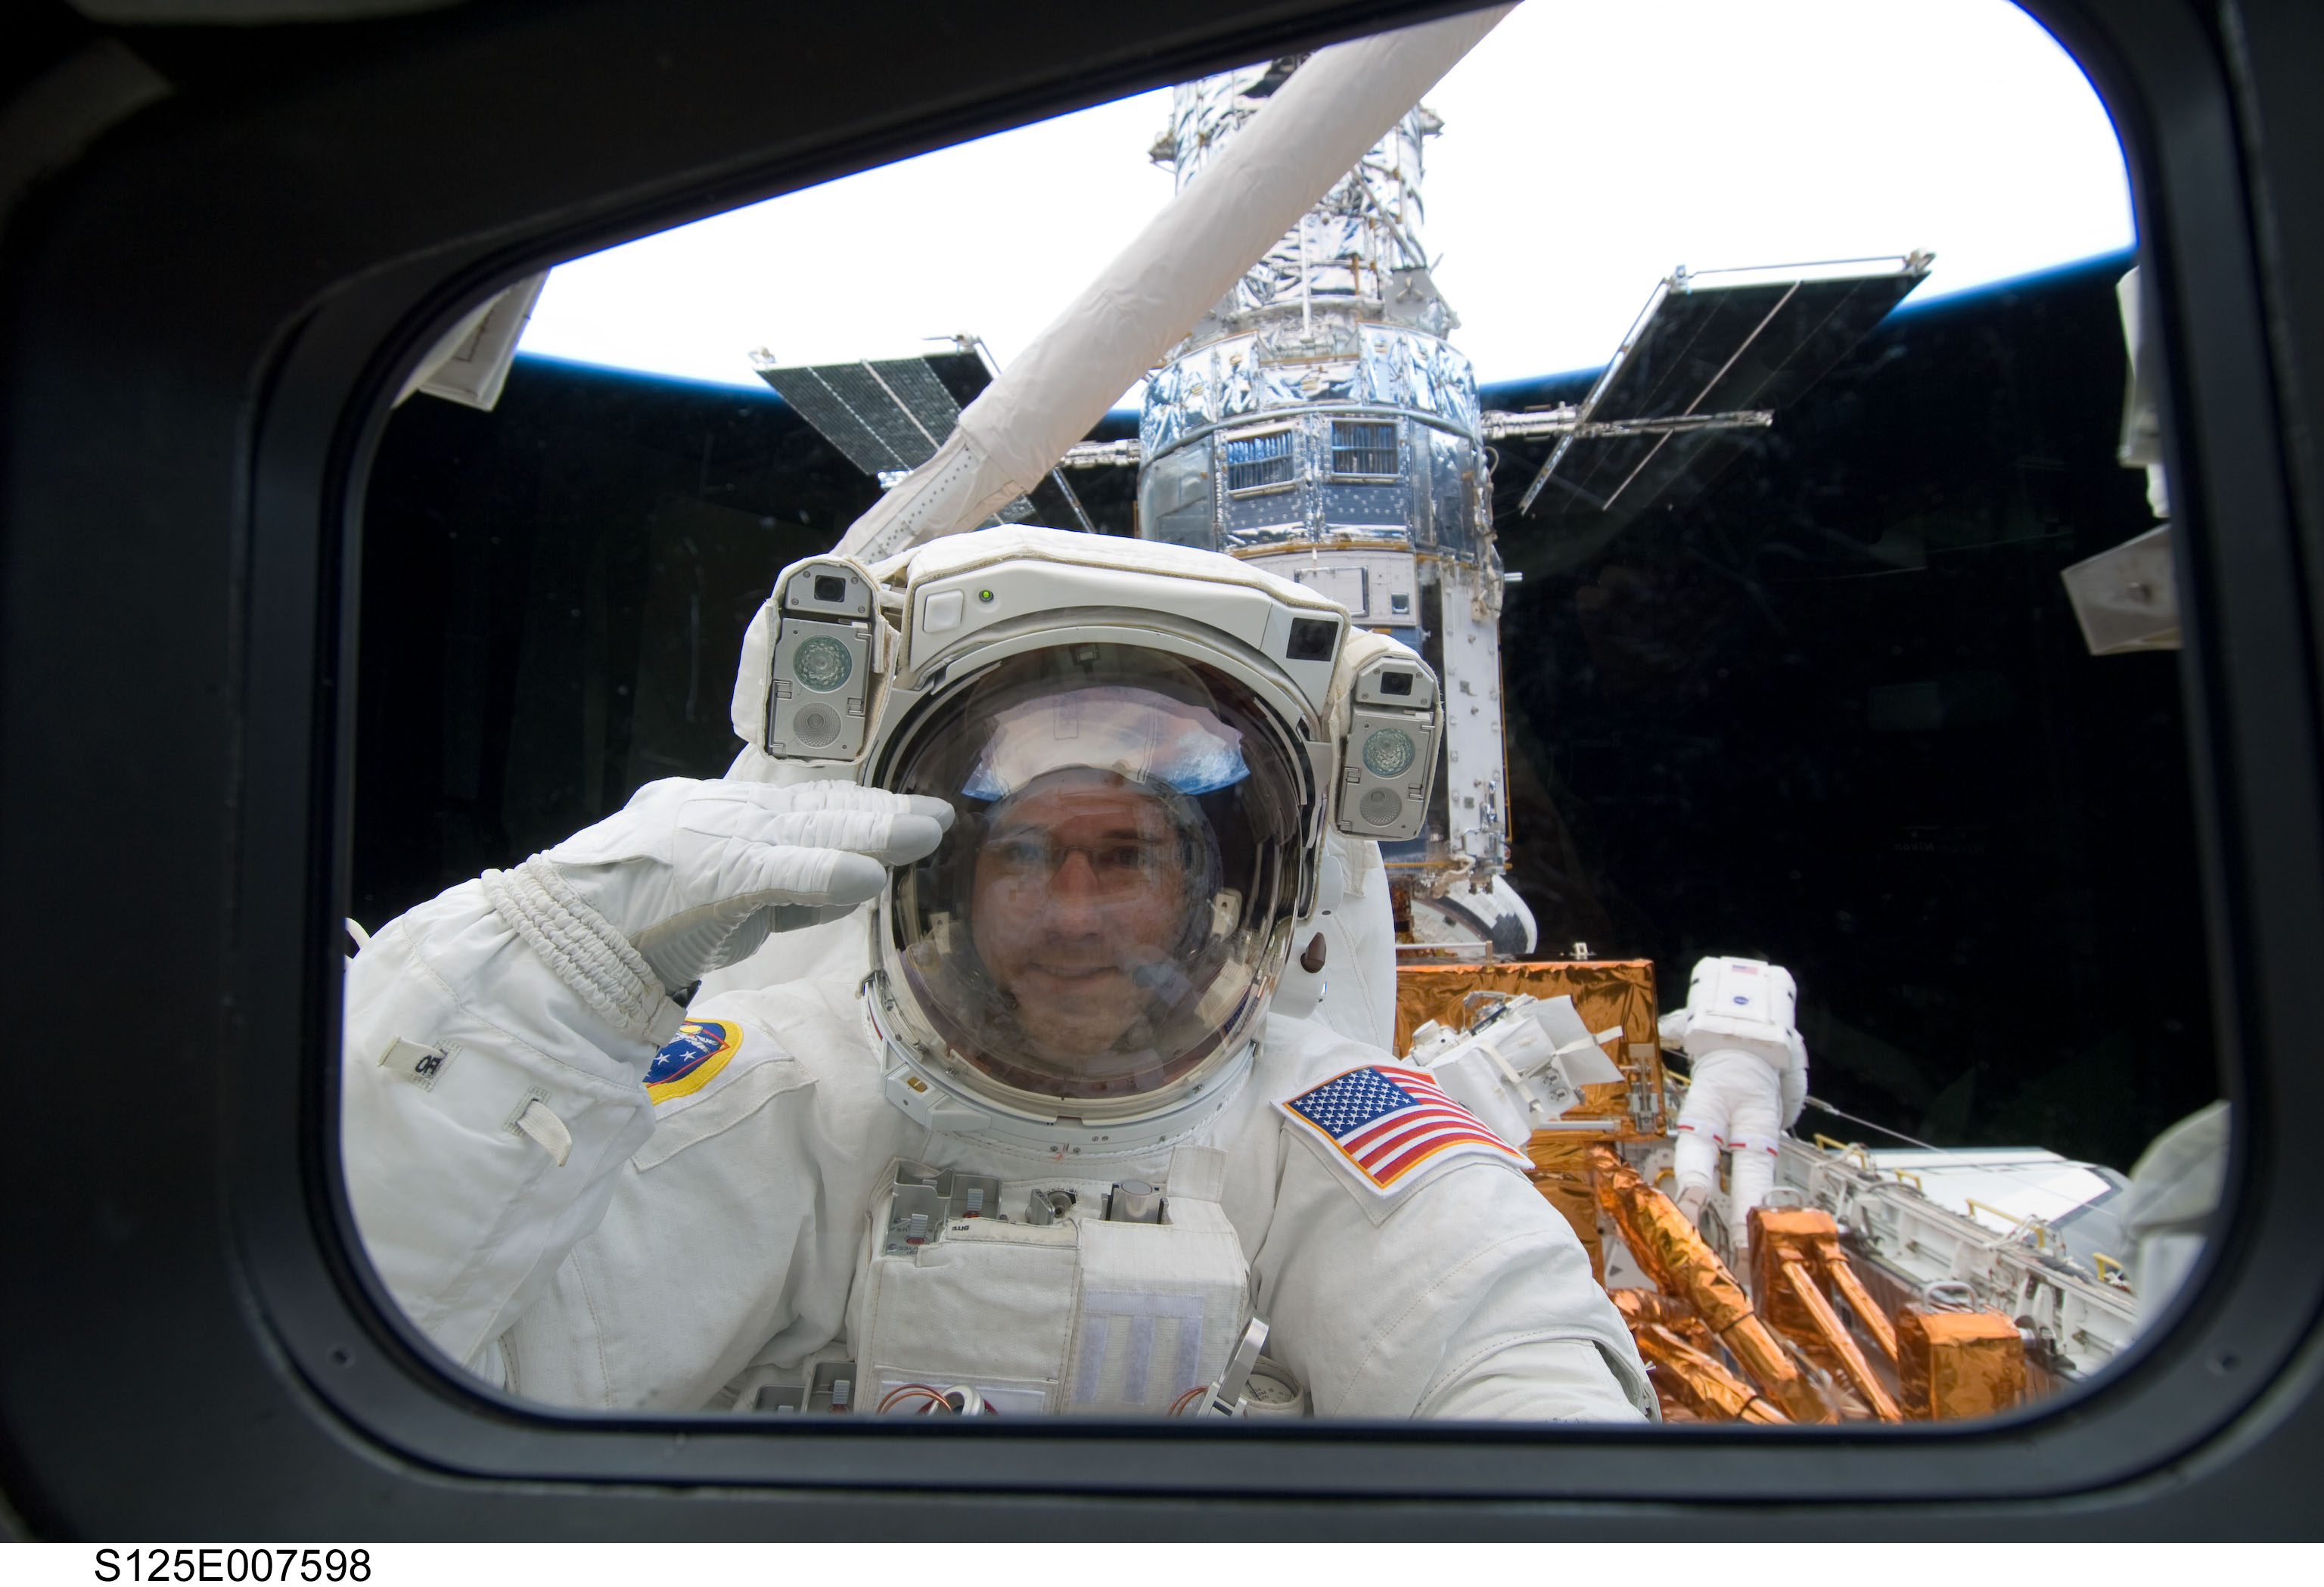 So, astronaut Mike Good, what's it like to go into space ...